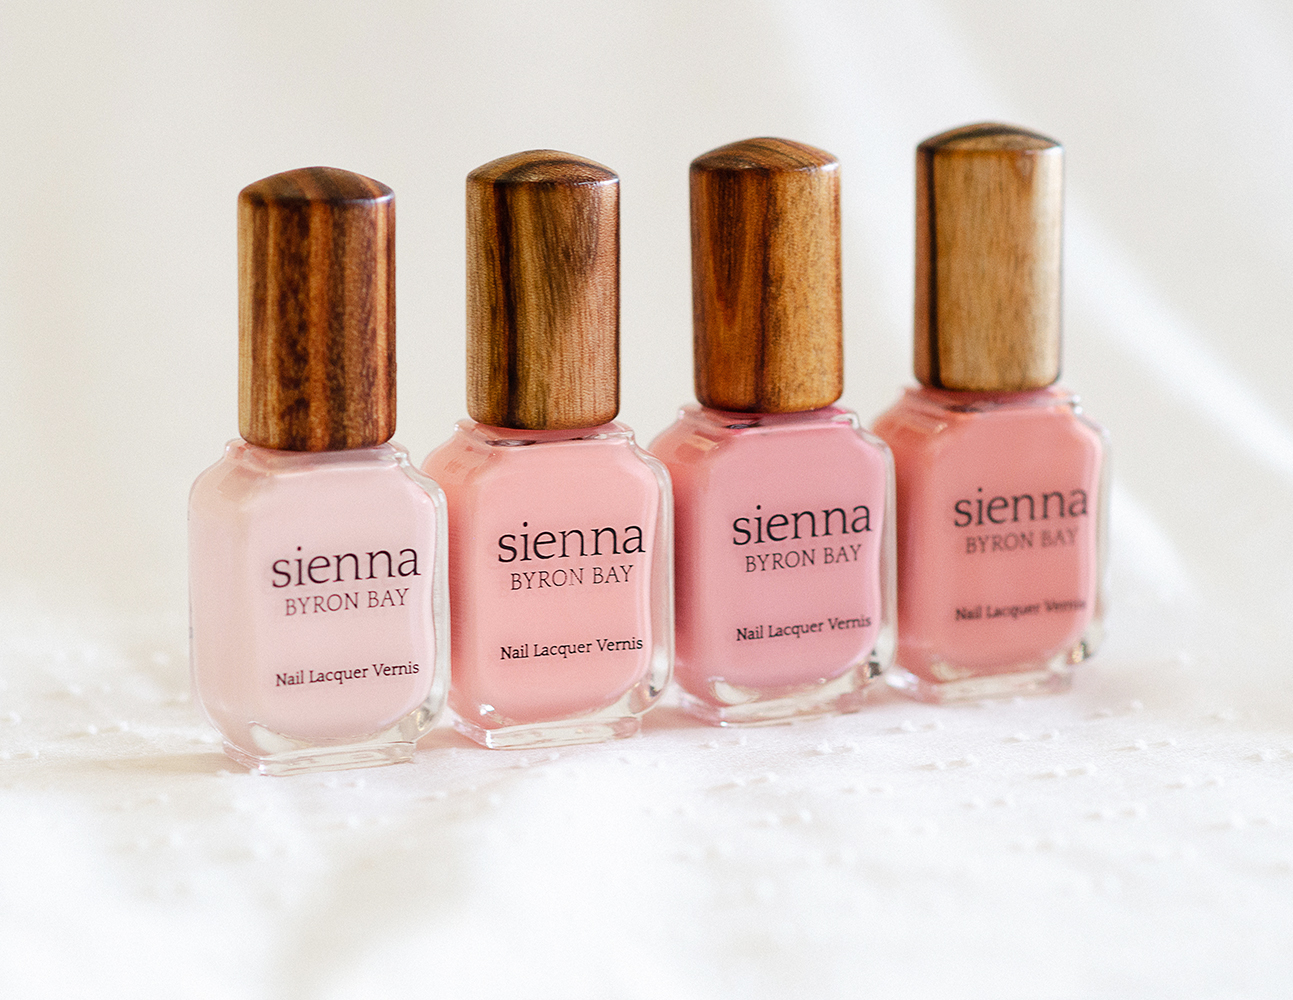 light pink nail polish bottles with timber cap by sienna